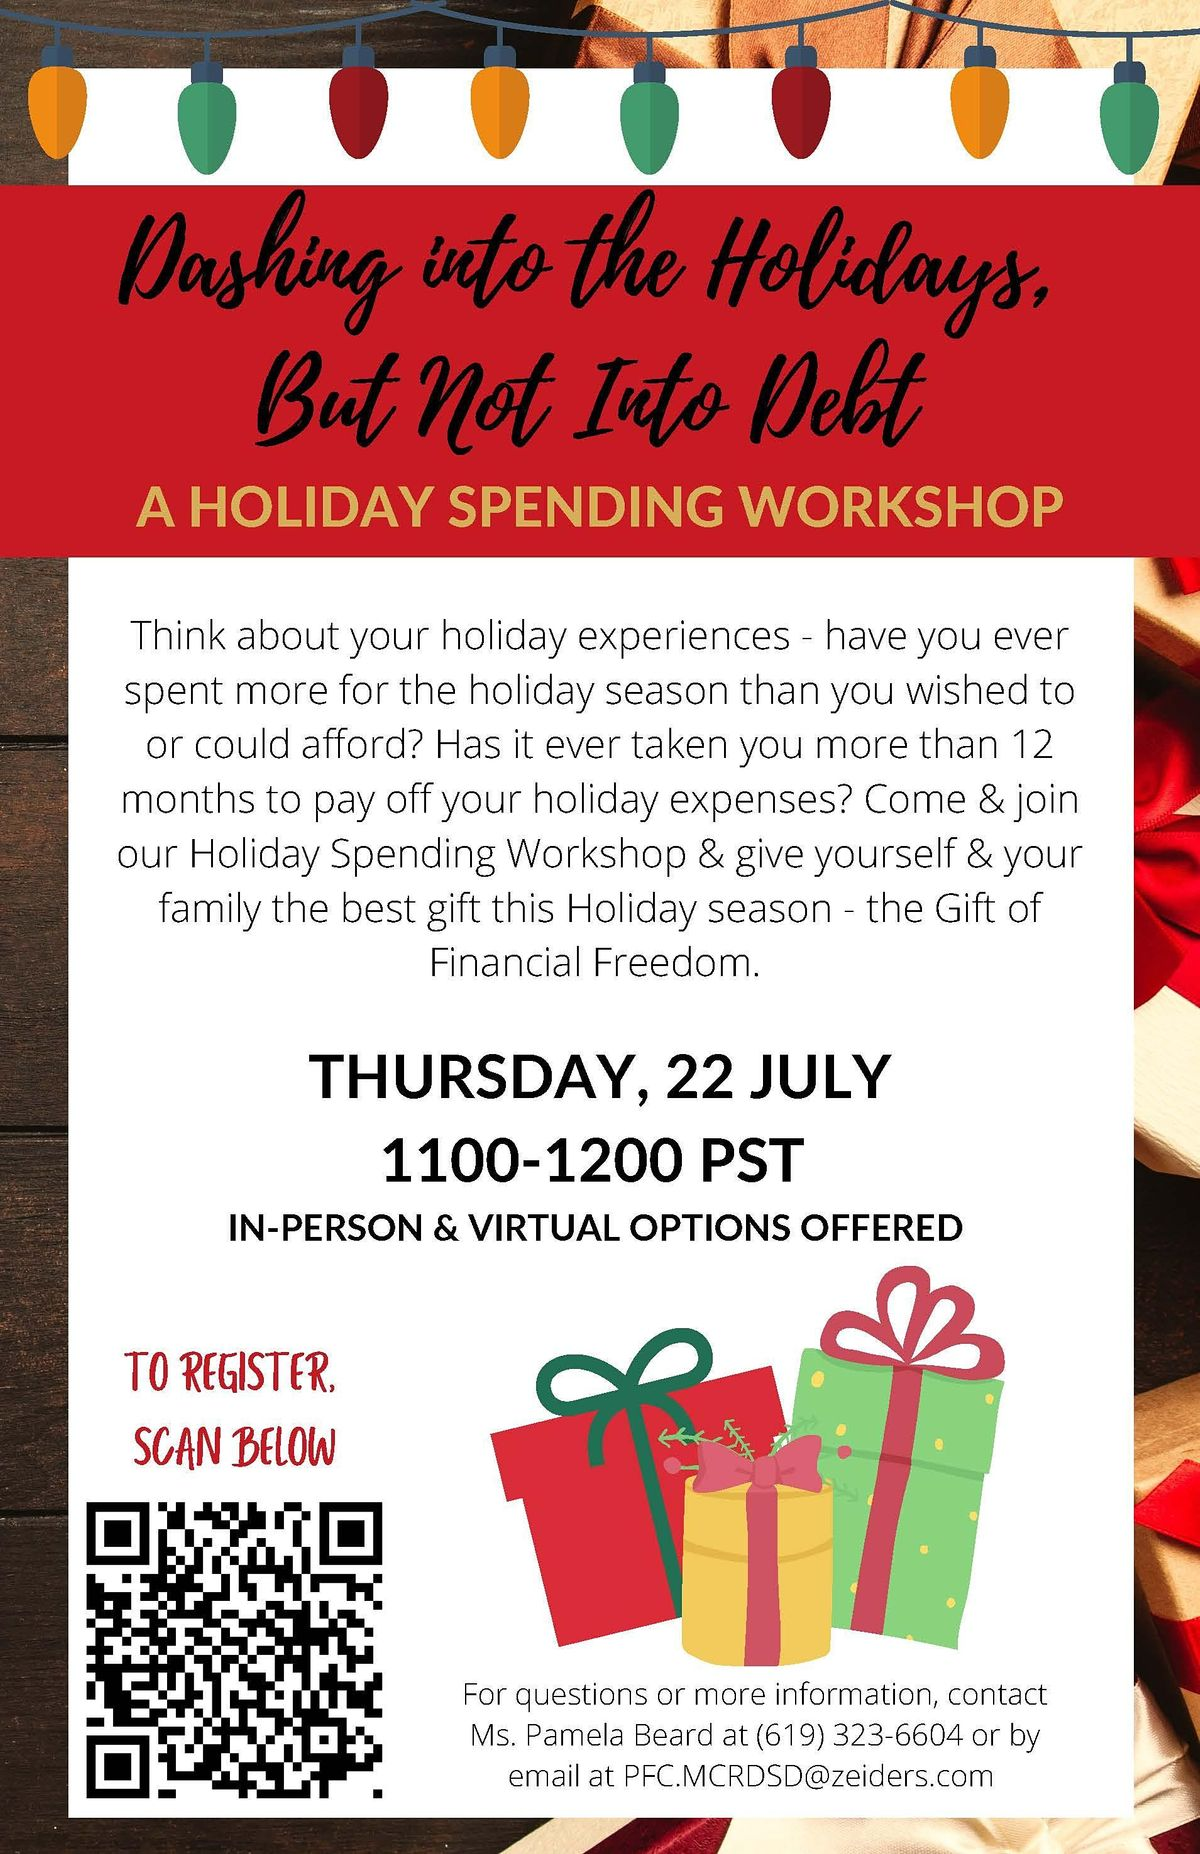 Dashing Into the Holidays... But Not Into Debt (Holiday Spending Workshop)